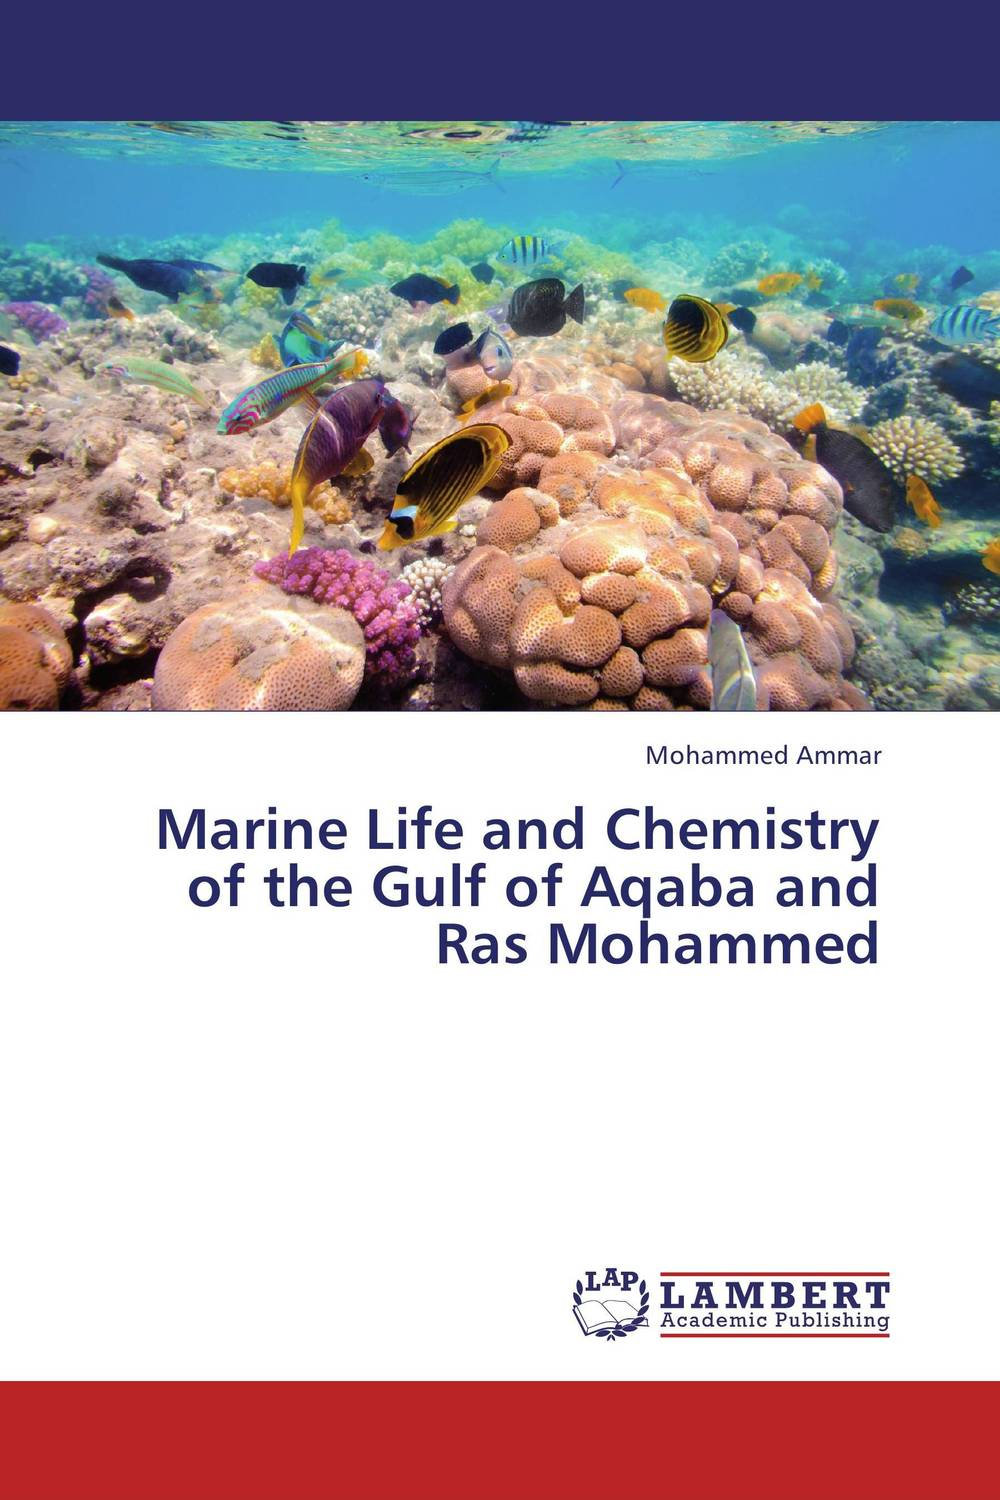 Marine Life and Chemistry of the Gulf of Aqaba and Ras Mohammed